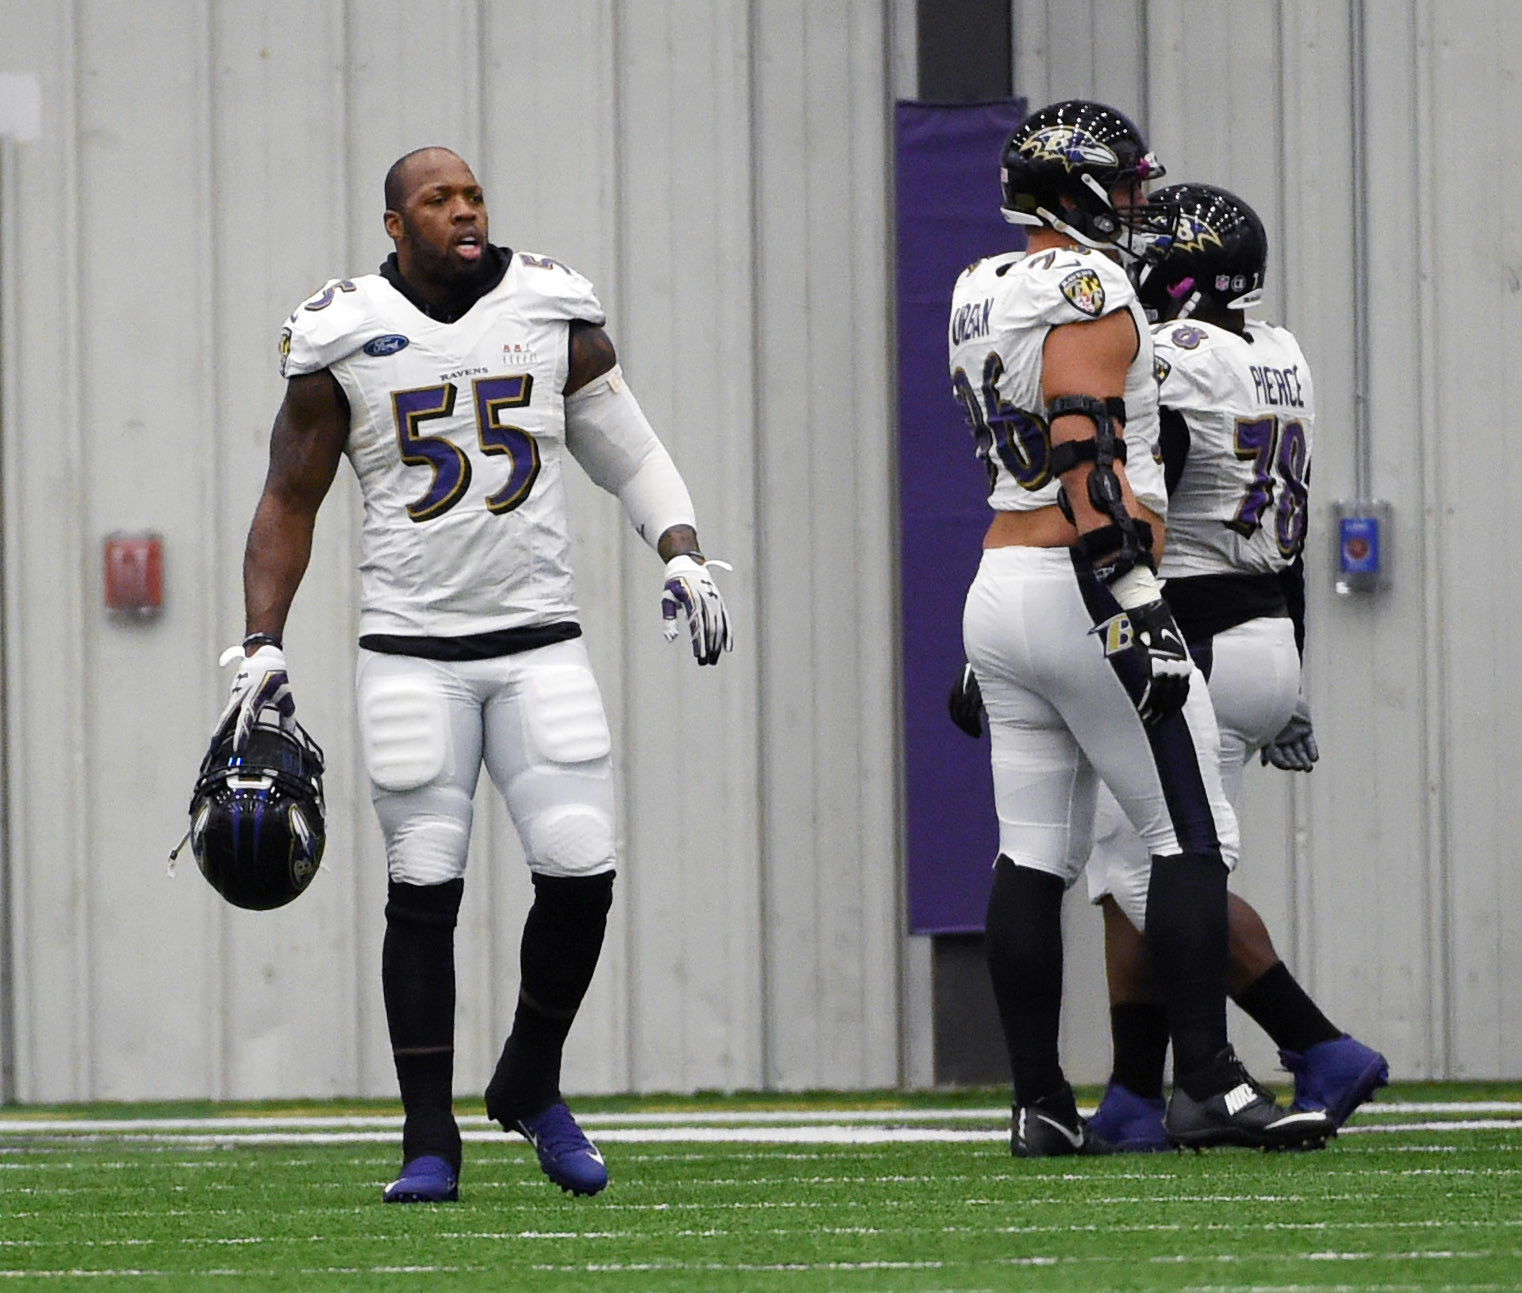 Terrell Suggs has been most menacing in fourth quarters